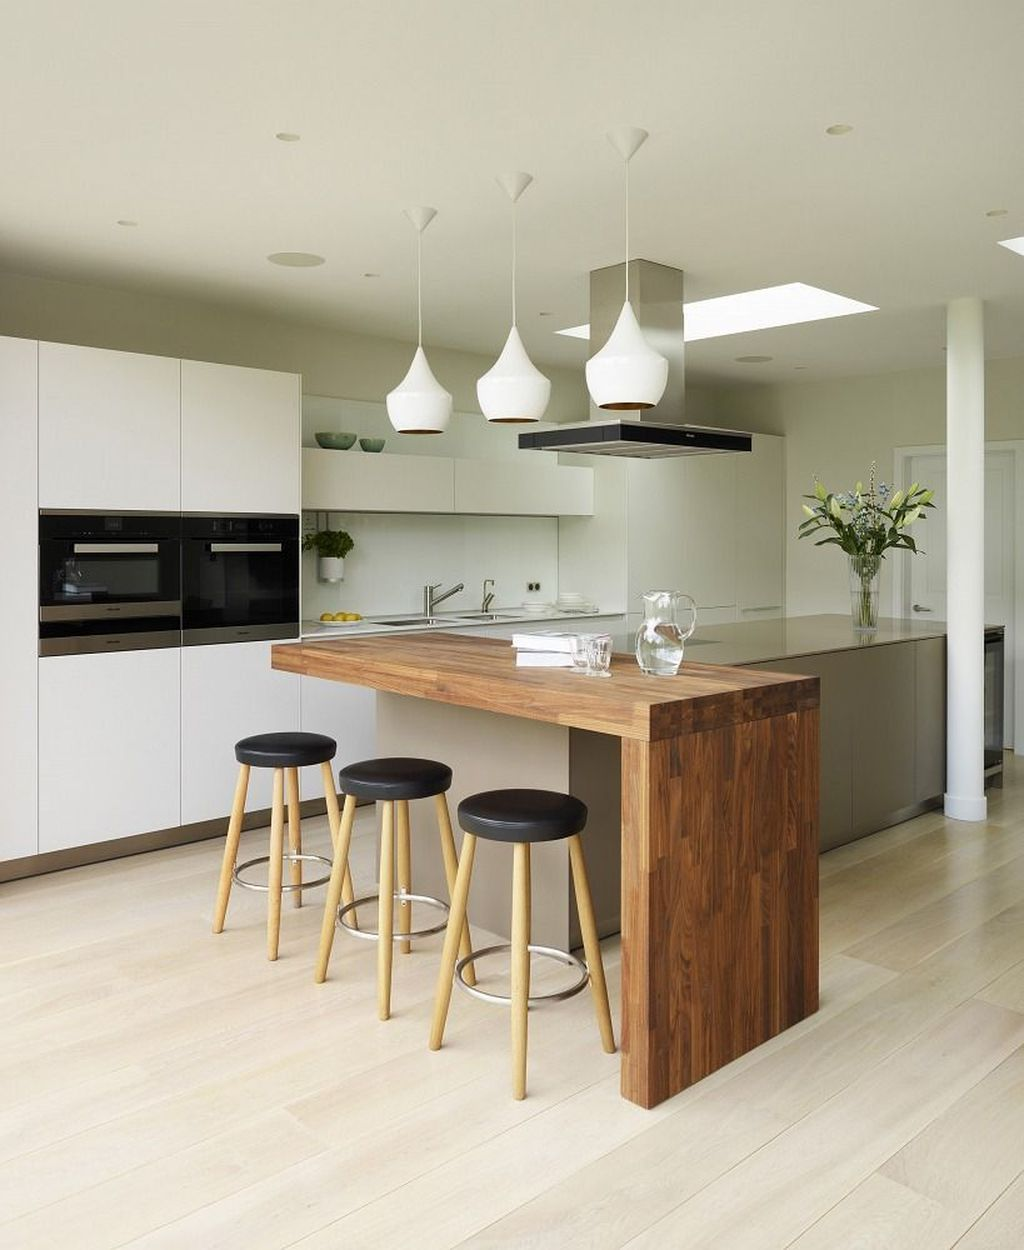 Awesome impressive kitchen island design ideas you have to know more at https also bad cleaning habits kick in real estate rh pinterest